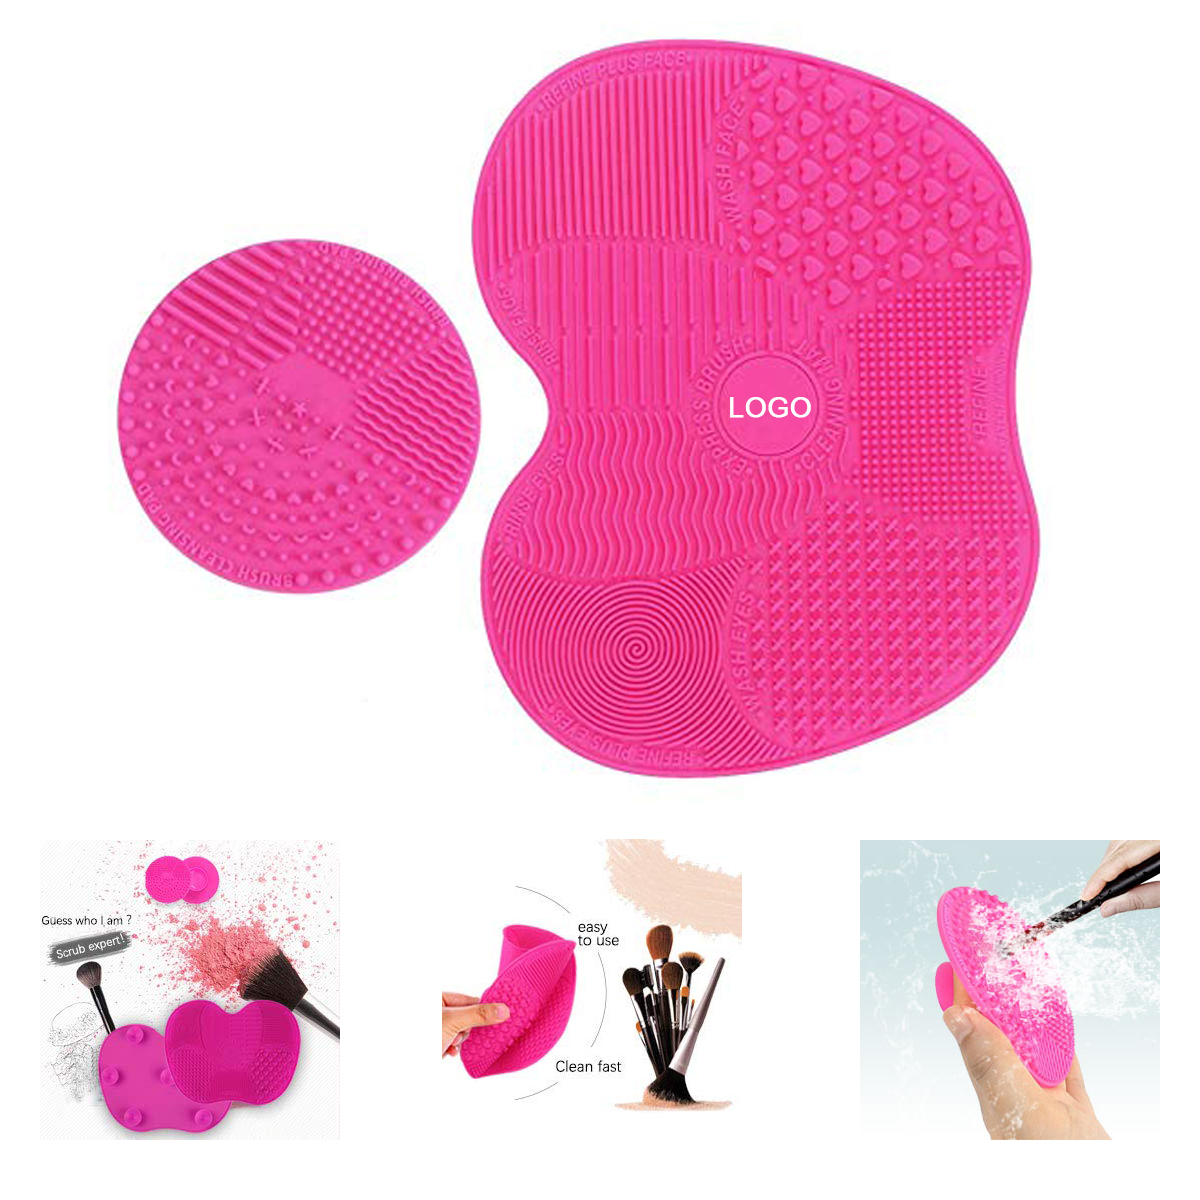 2019 New Makeup Brush Cleaner Mat 2 pcs